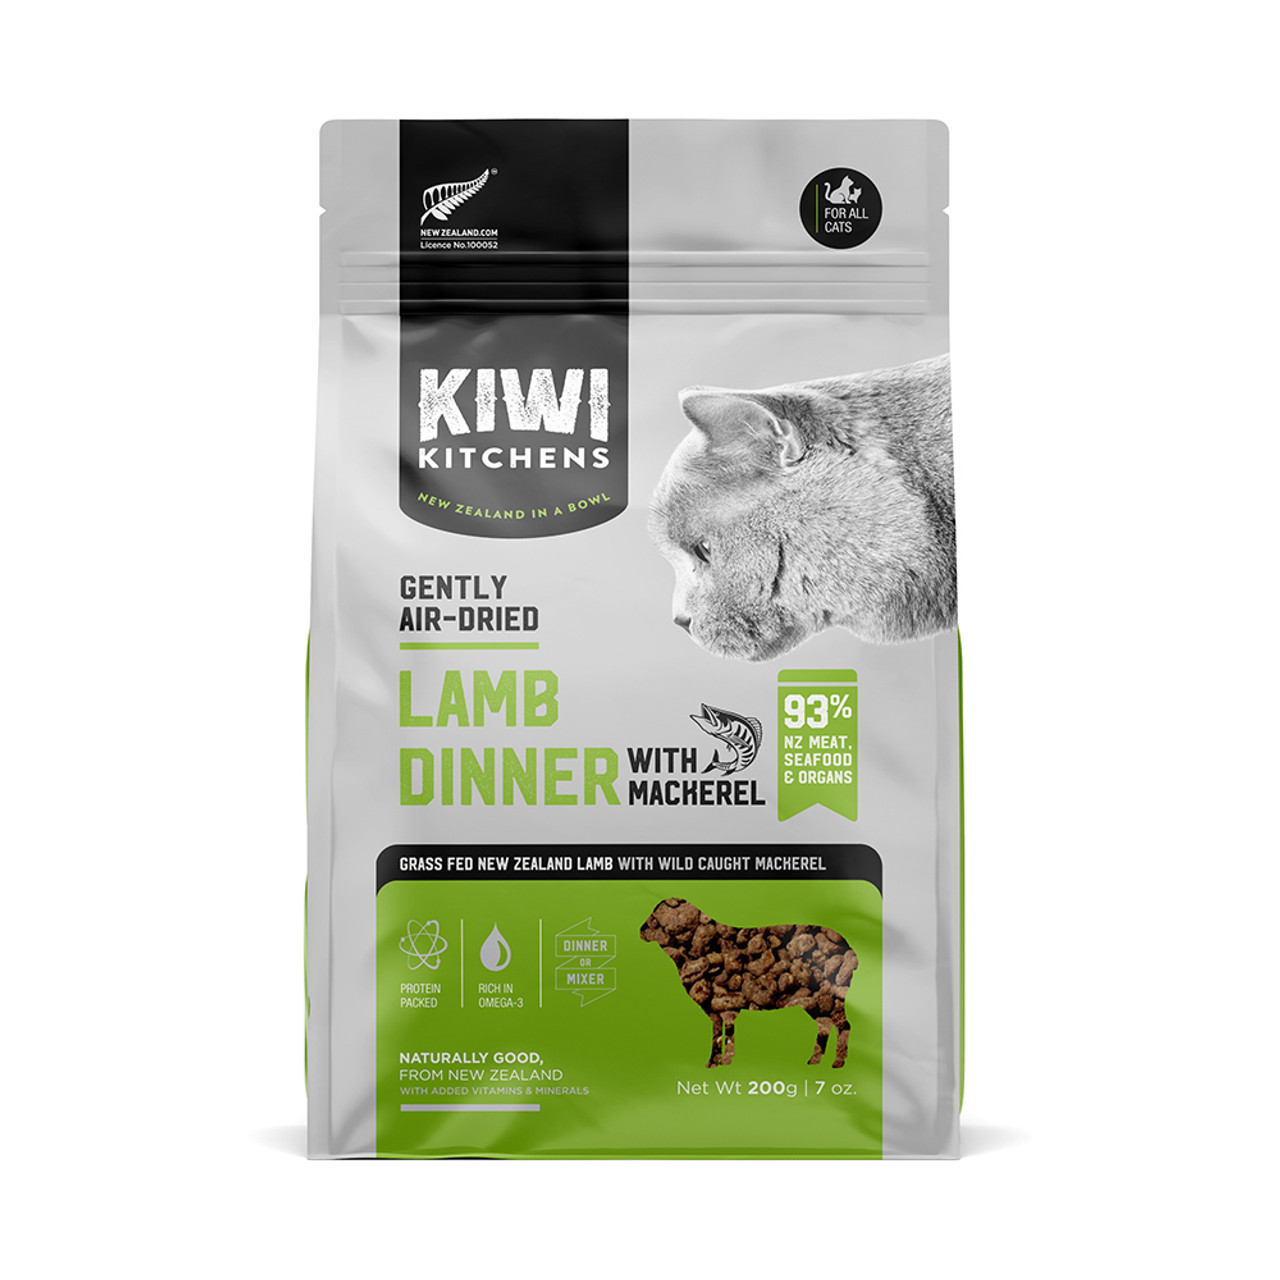 Kiwi Kitchens Gently Air-Dried Lamb Dinner With Mackerel Cat Food